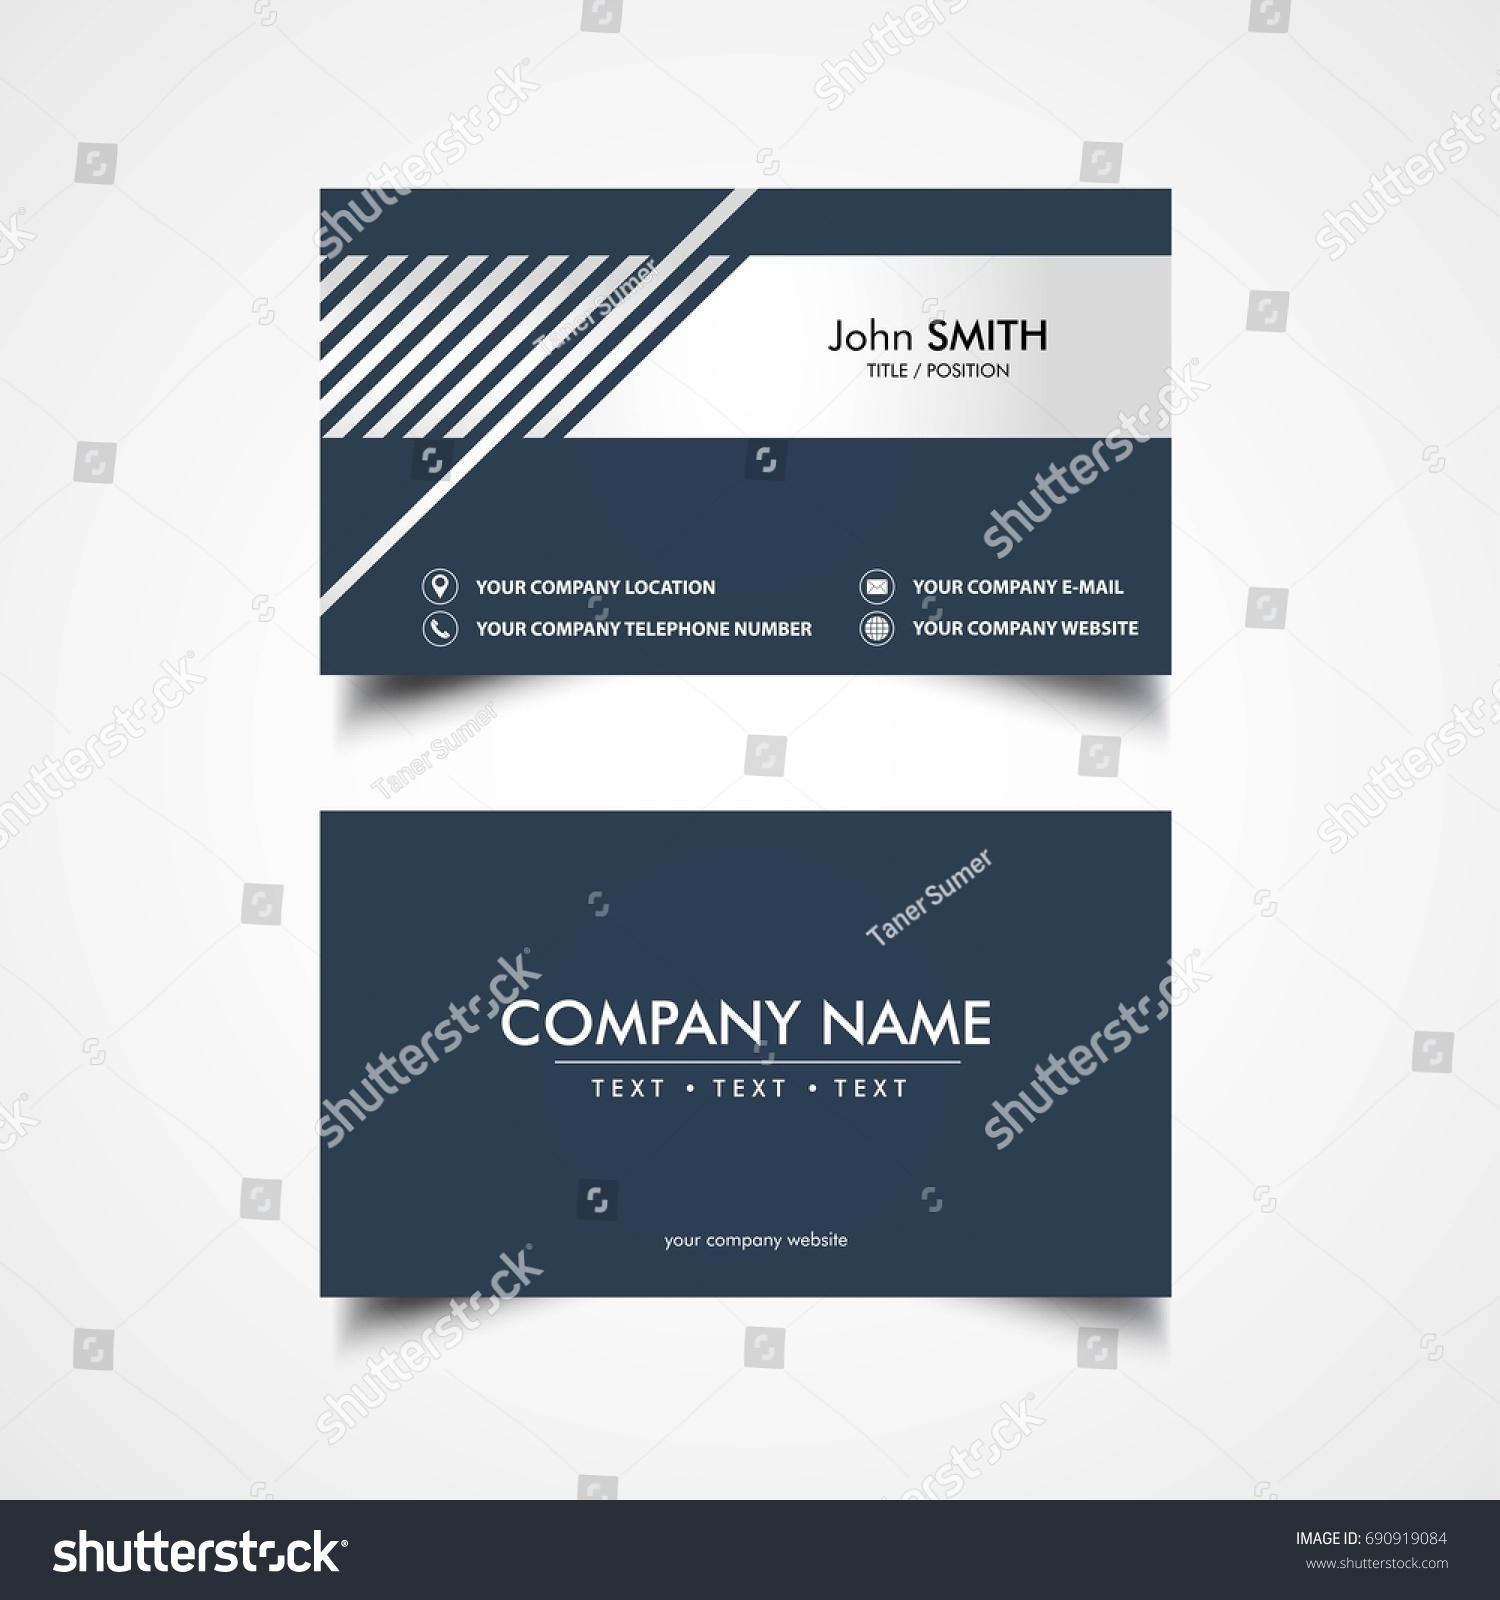 Simple business card template vector illustration eps file ez id 690919084 flashek Images